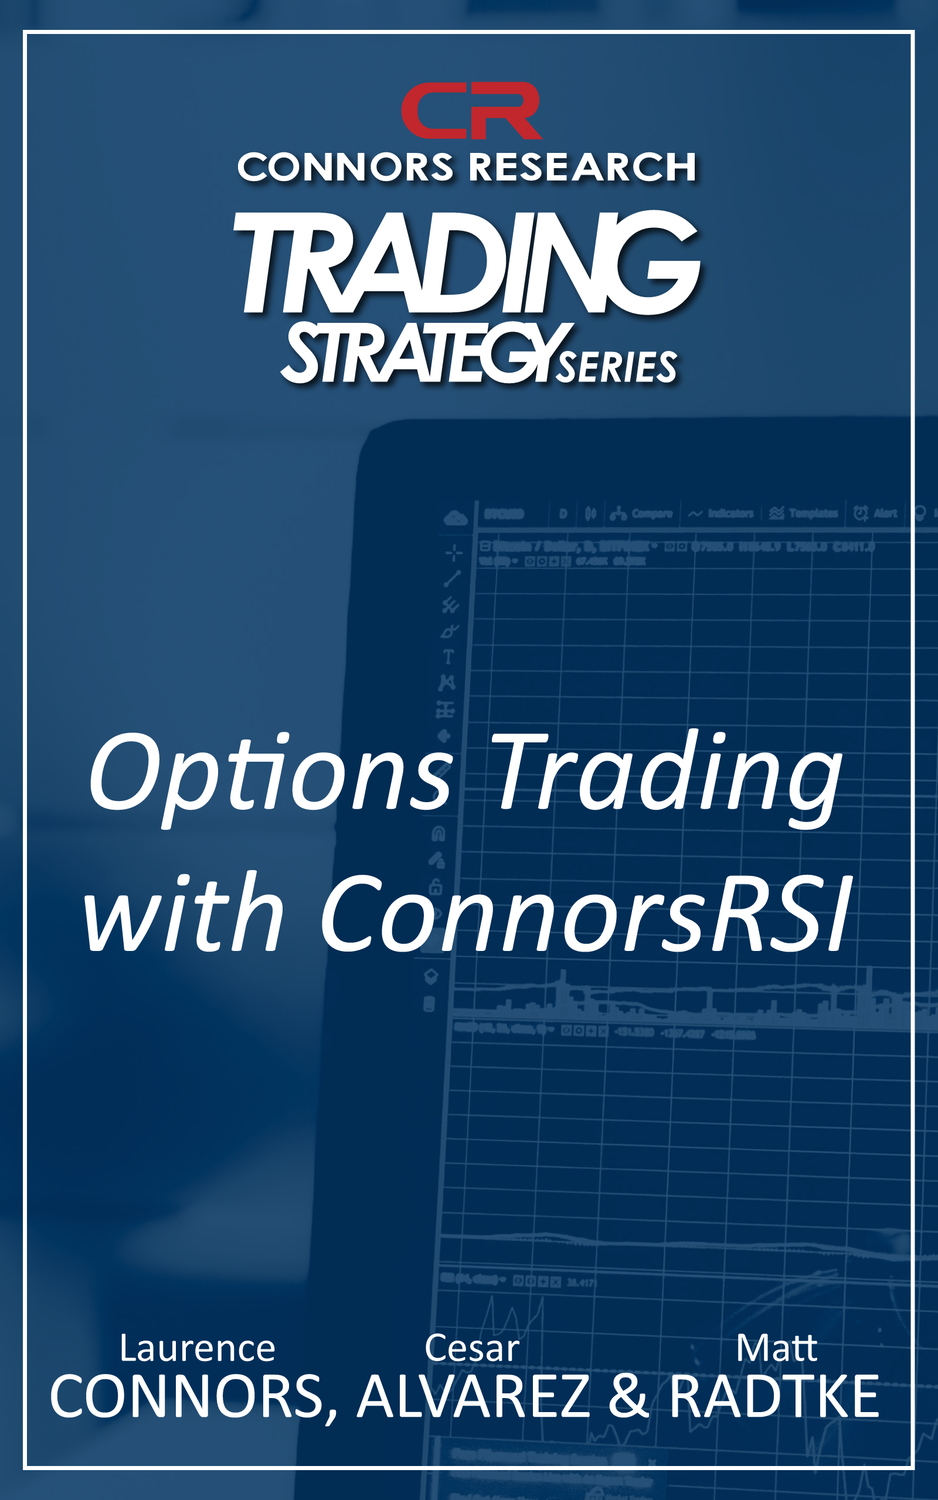 Connors Research Trading Strategy Series: Options Trading with ConnorsRSI